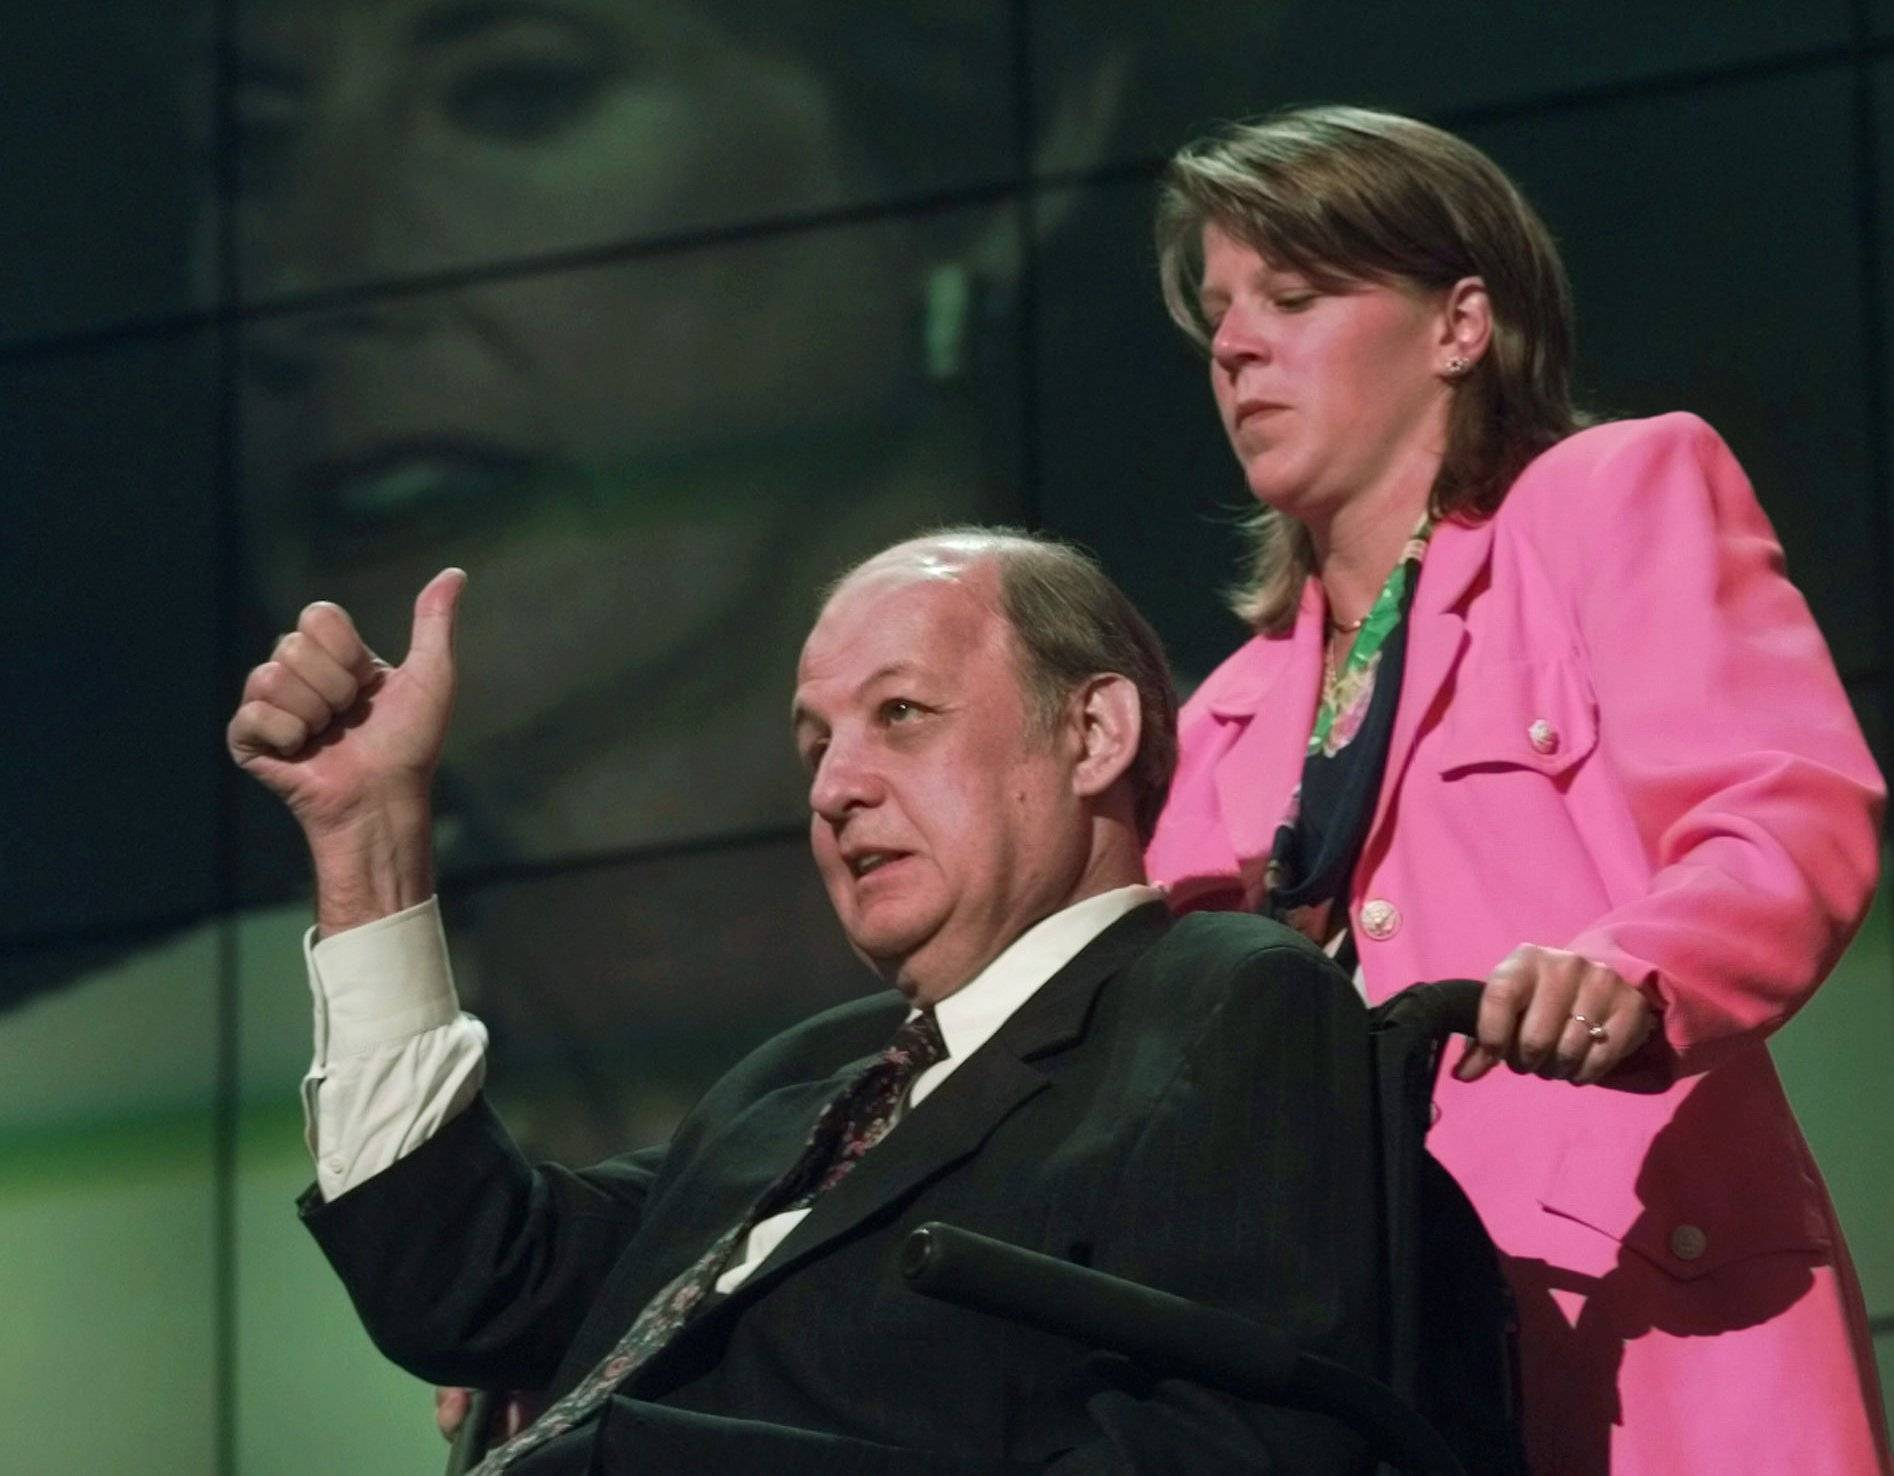 Images: James Brady, 1940 - 2014